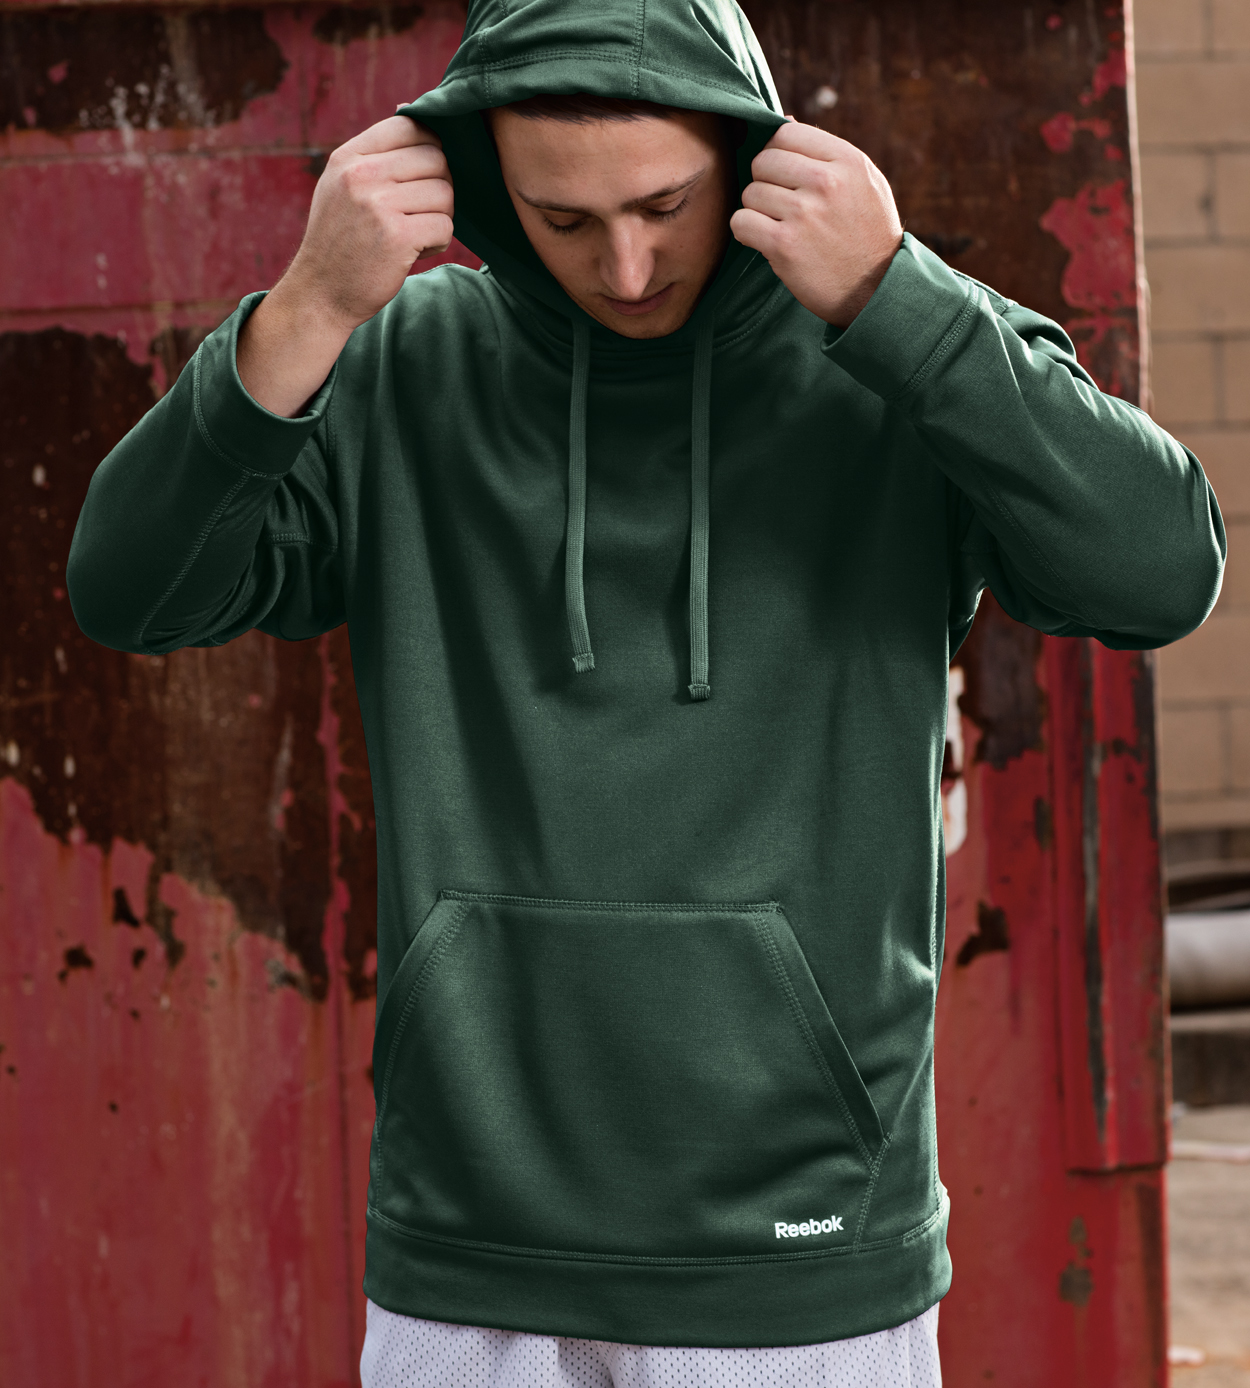 Reebok 7436 - Men's Champion Pullover Tech Fleece